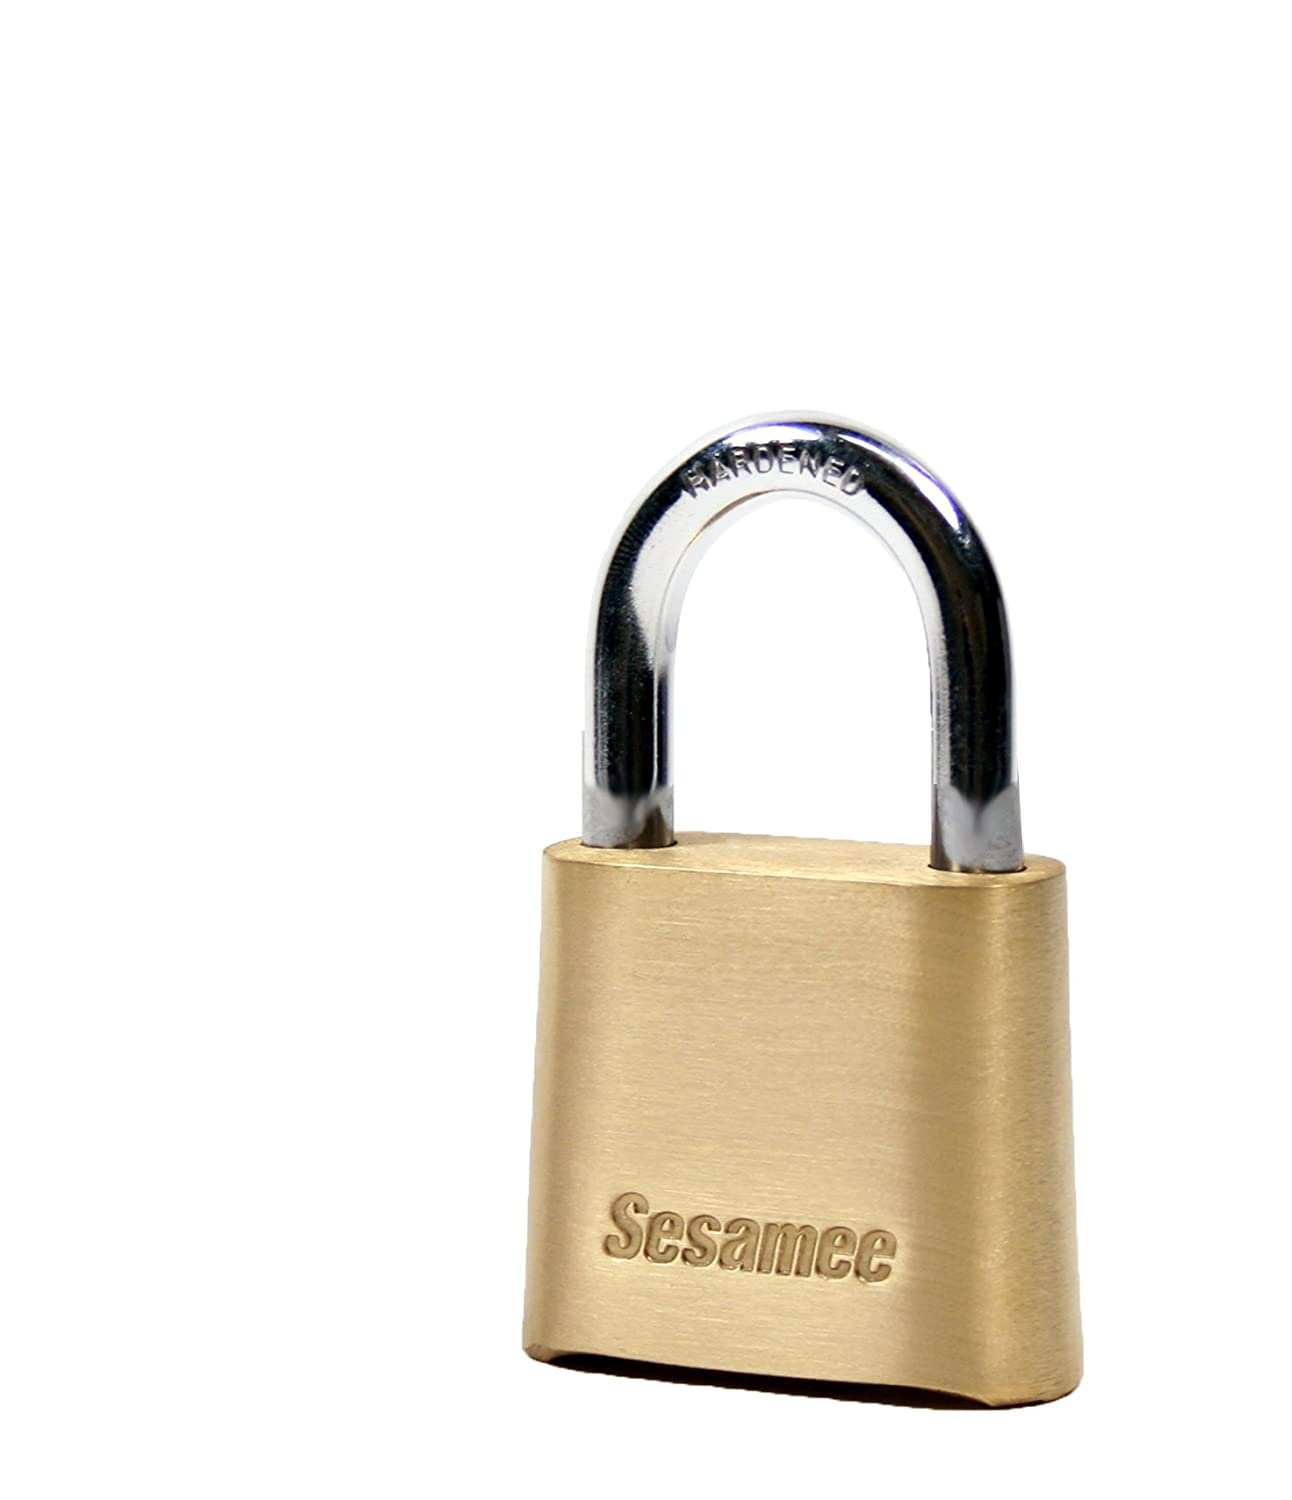 4bb46814f540 Sesamee K436 4 Dial Bottom Resettable Combination Brass Padlock with 1-Inch  Hardened Steel Shackle and 10,000 Potential Combinations